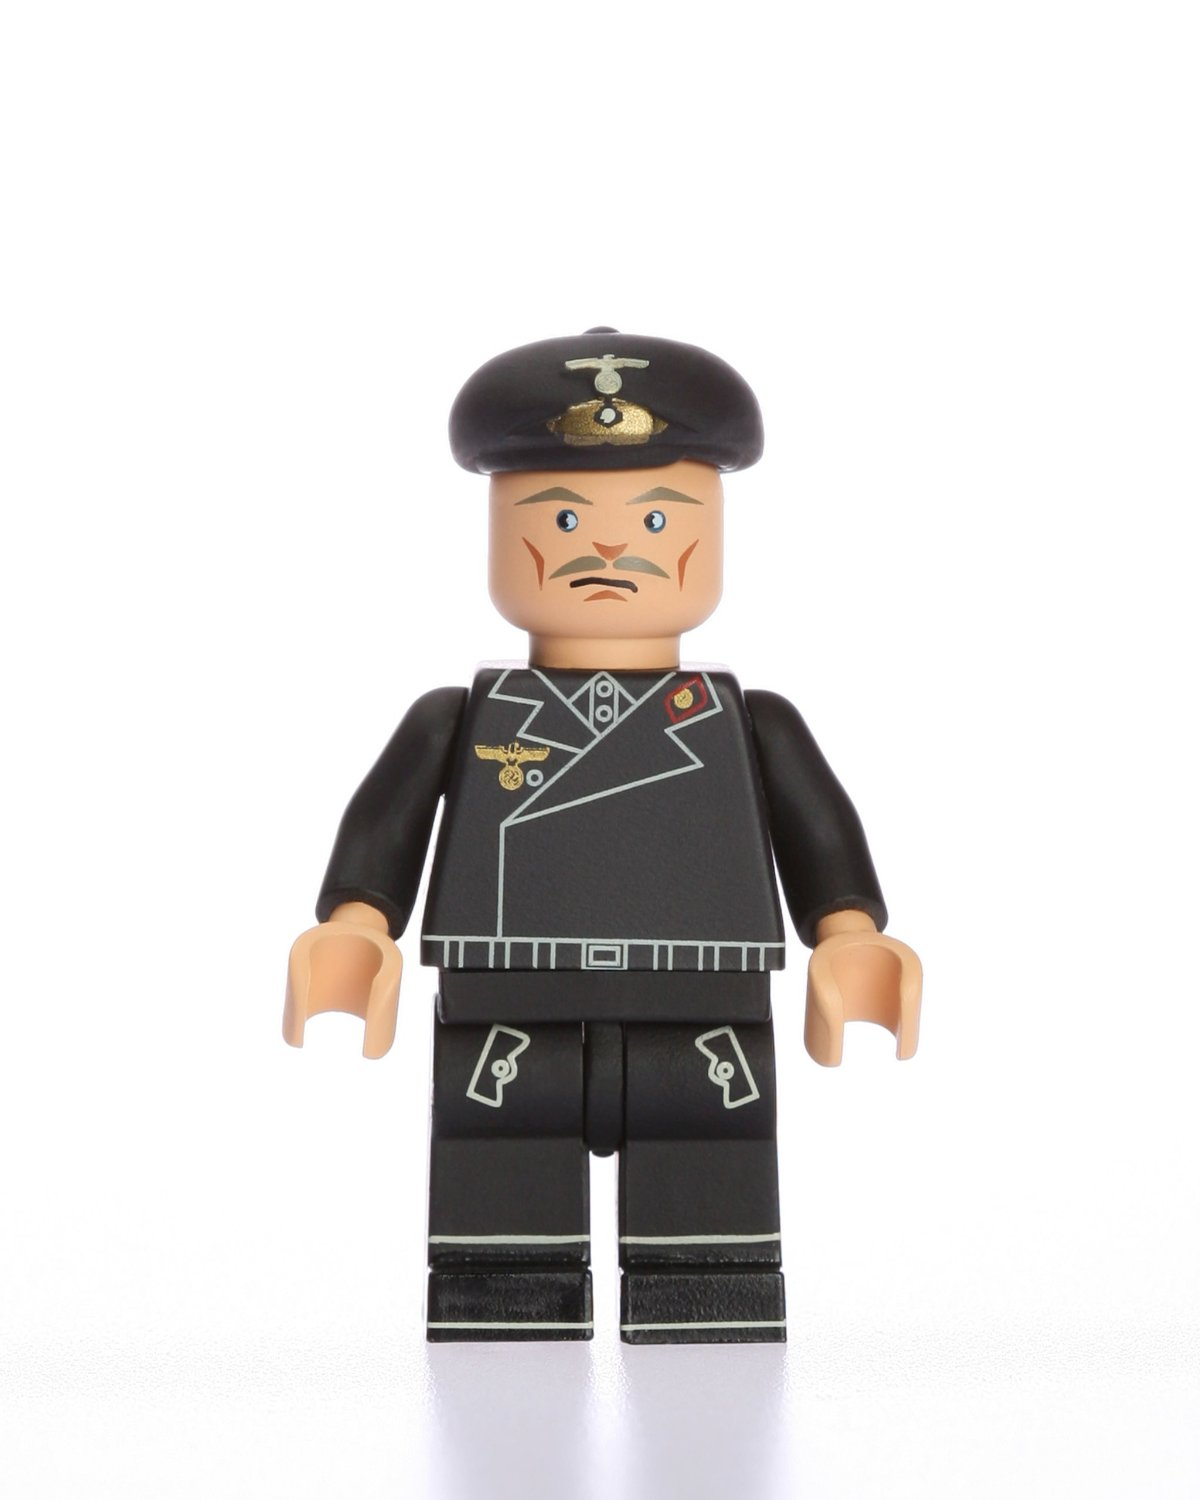 Army Minifigure WWII German Panzer Tank Commander Custom Building Military Minifigure Soldier